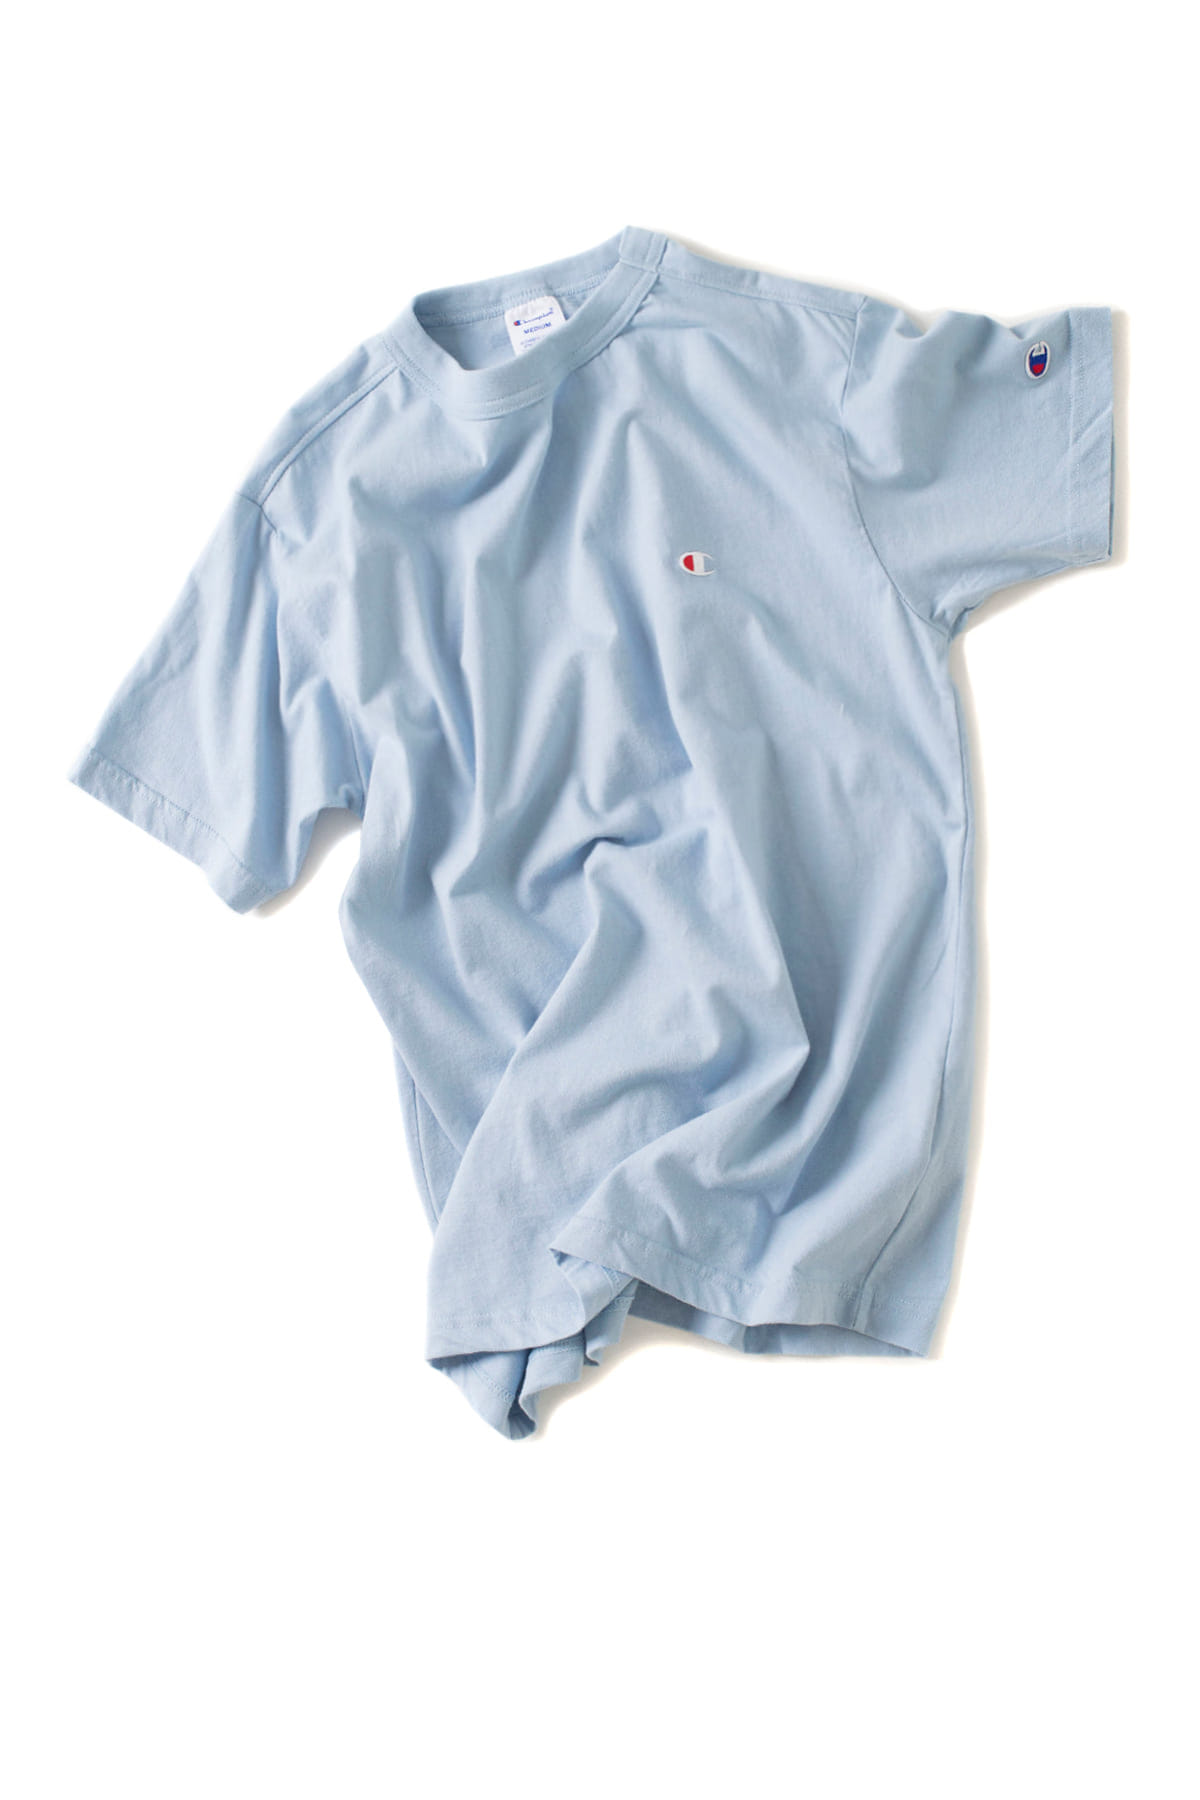 Champion : Basic T-Shirt (Pale Blue)